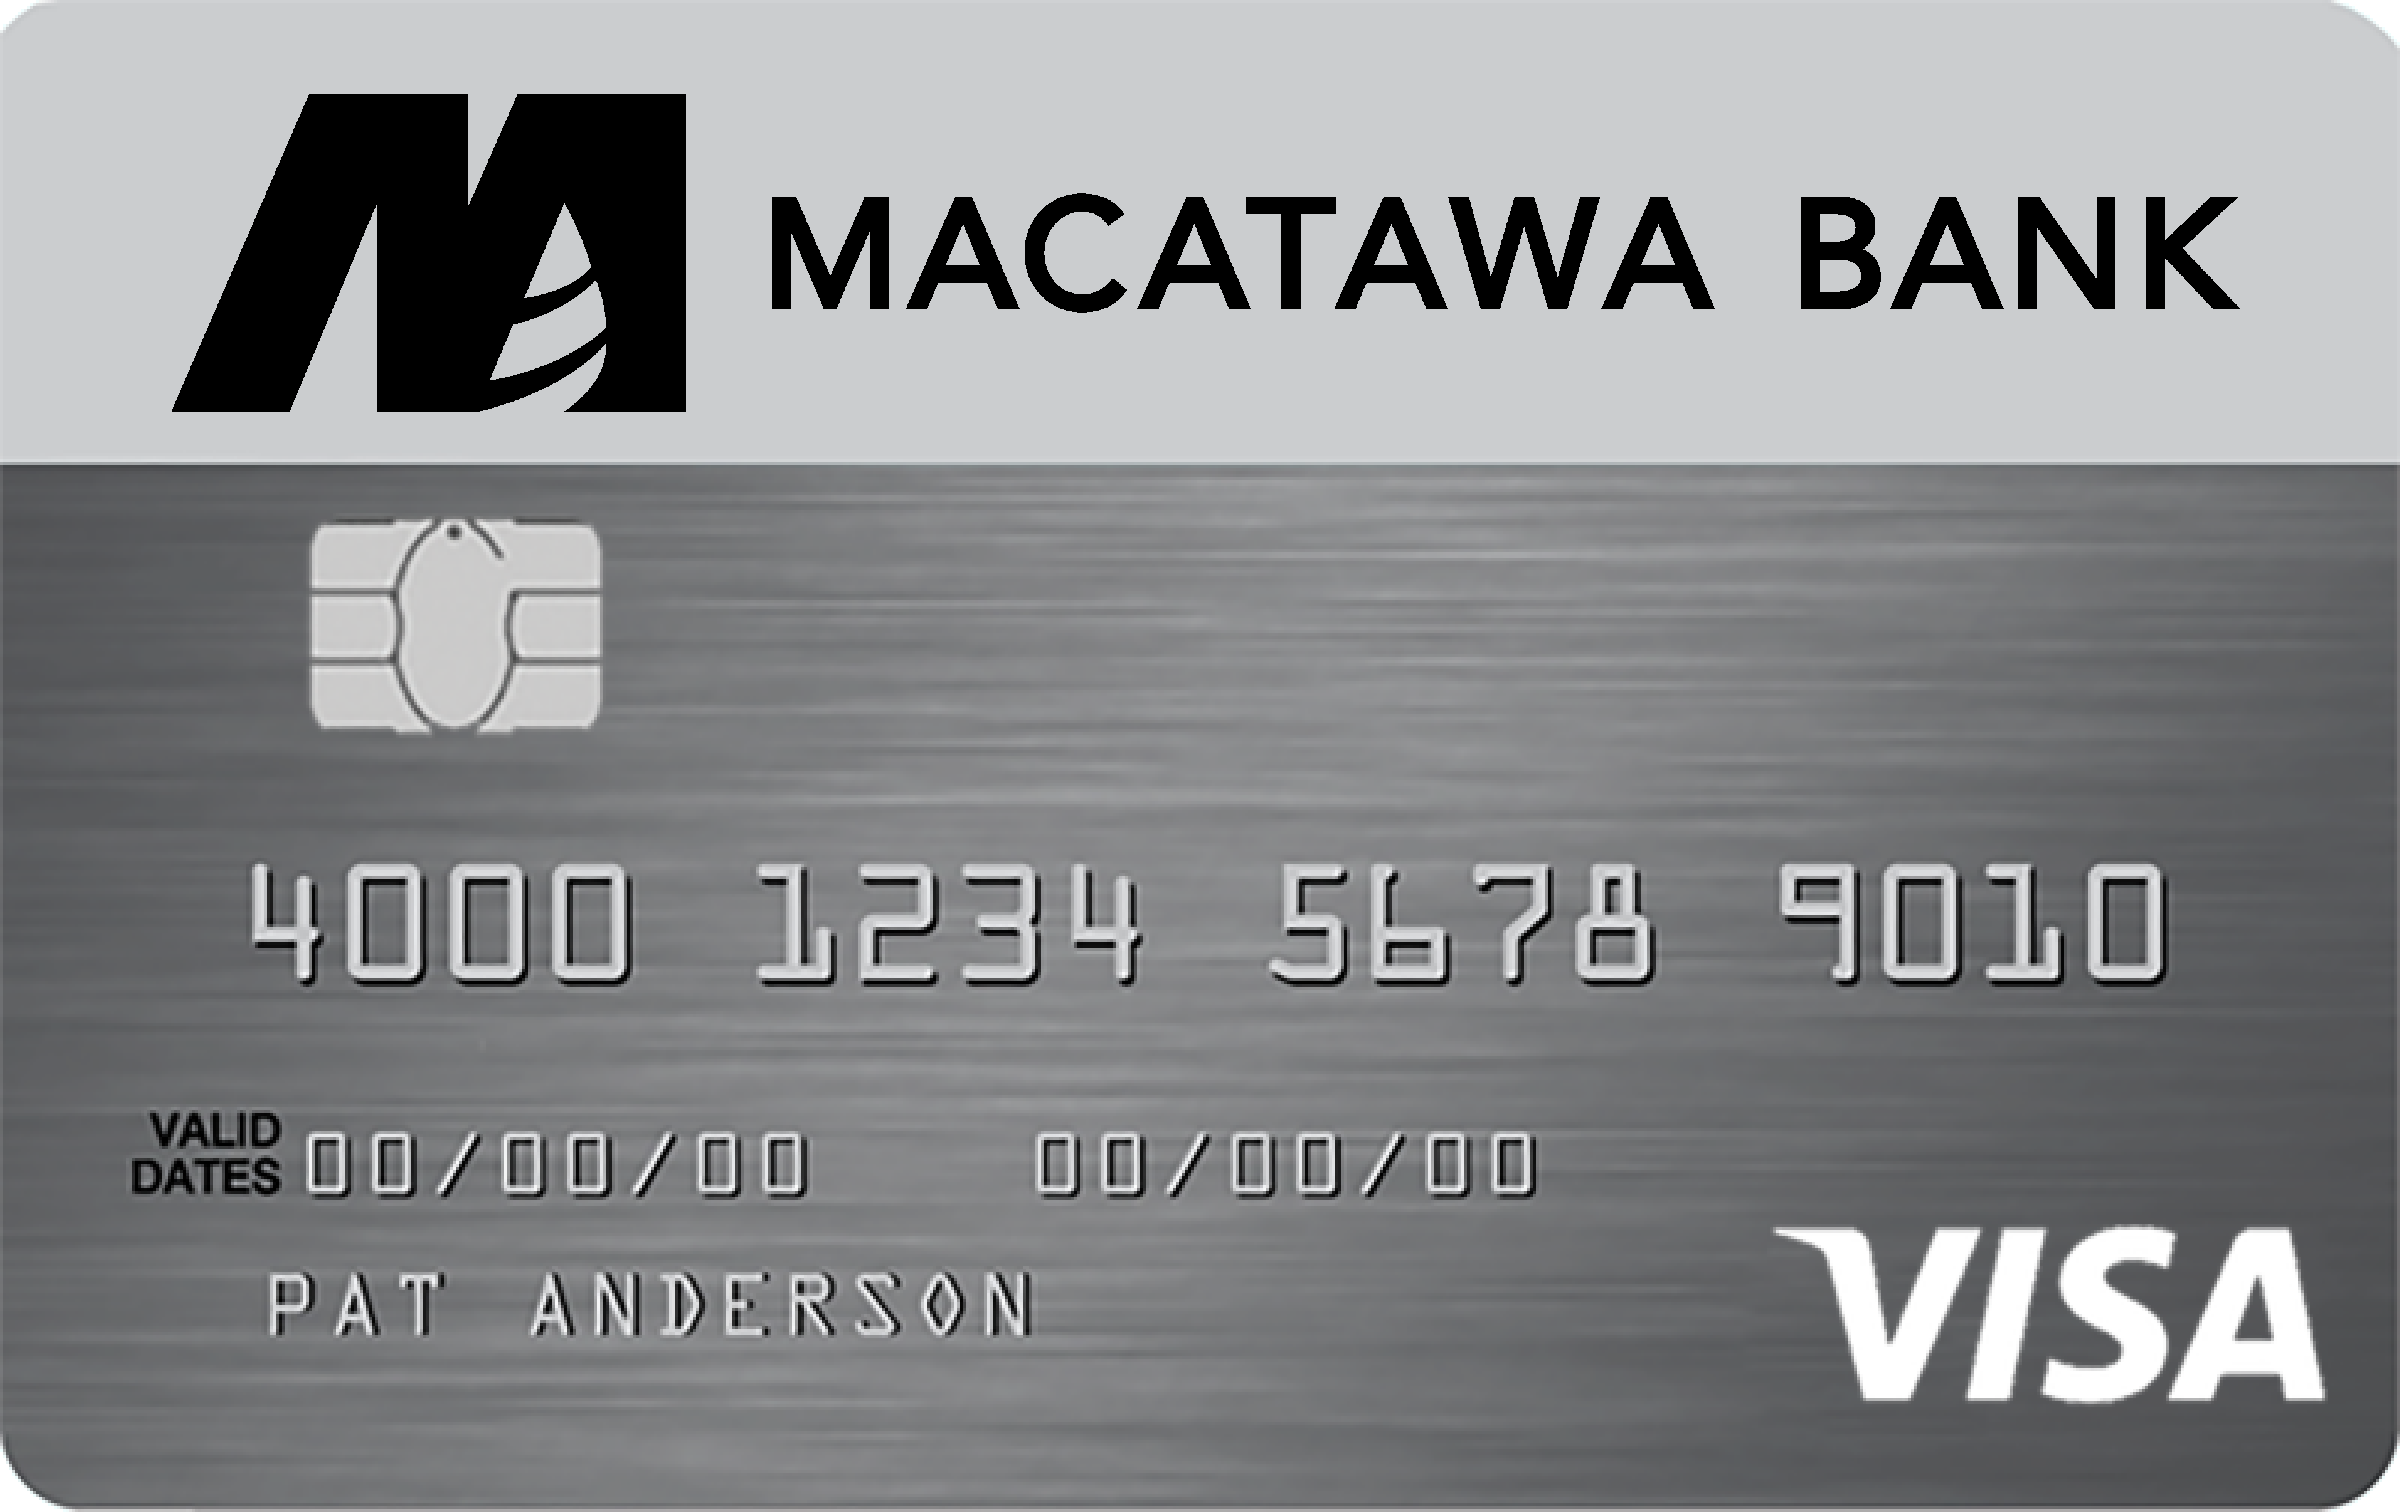 Macatawa Bank